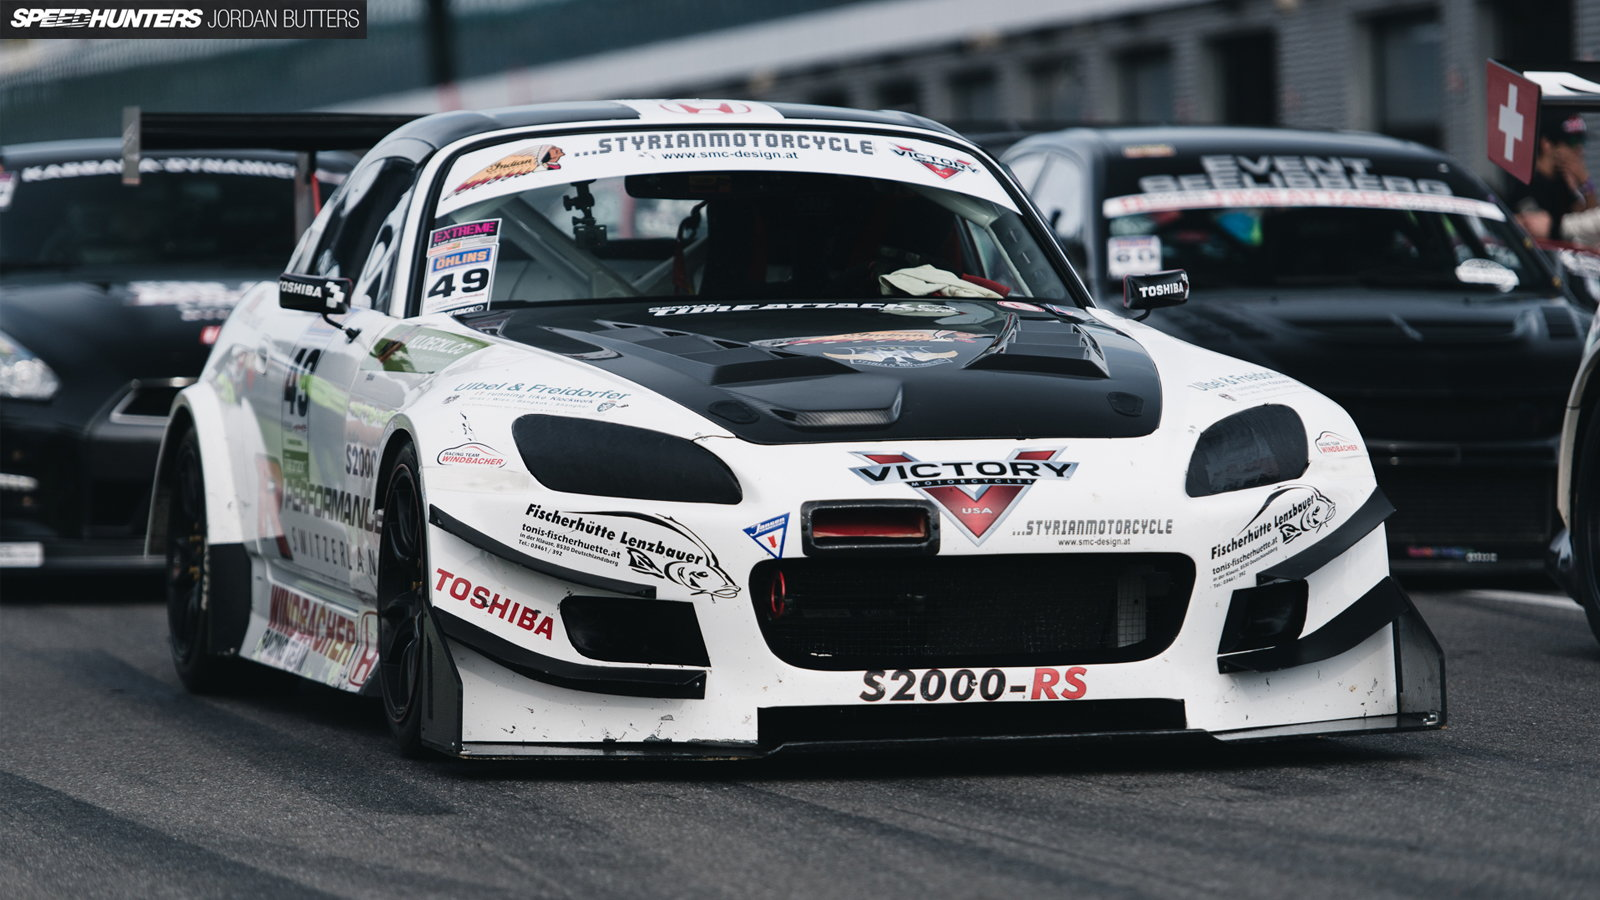 Rudolf Windbacher's Tuned S2000-RS